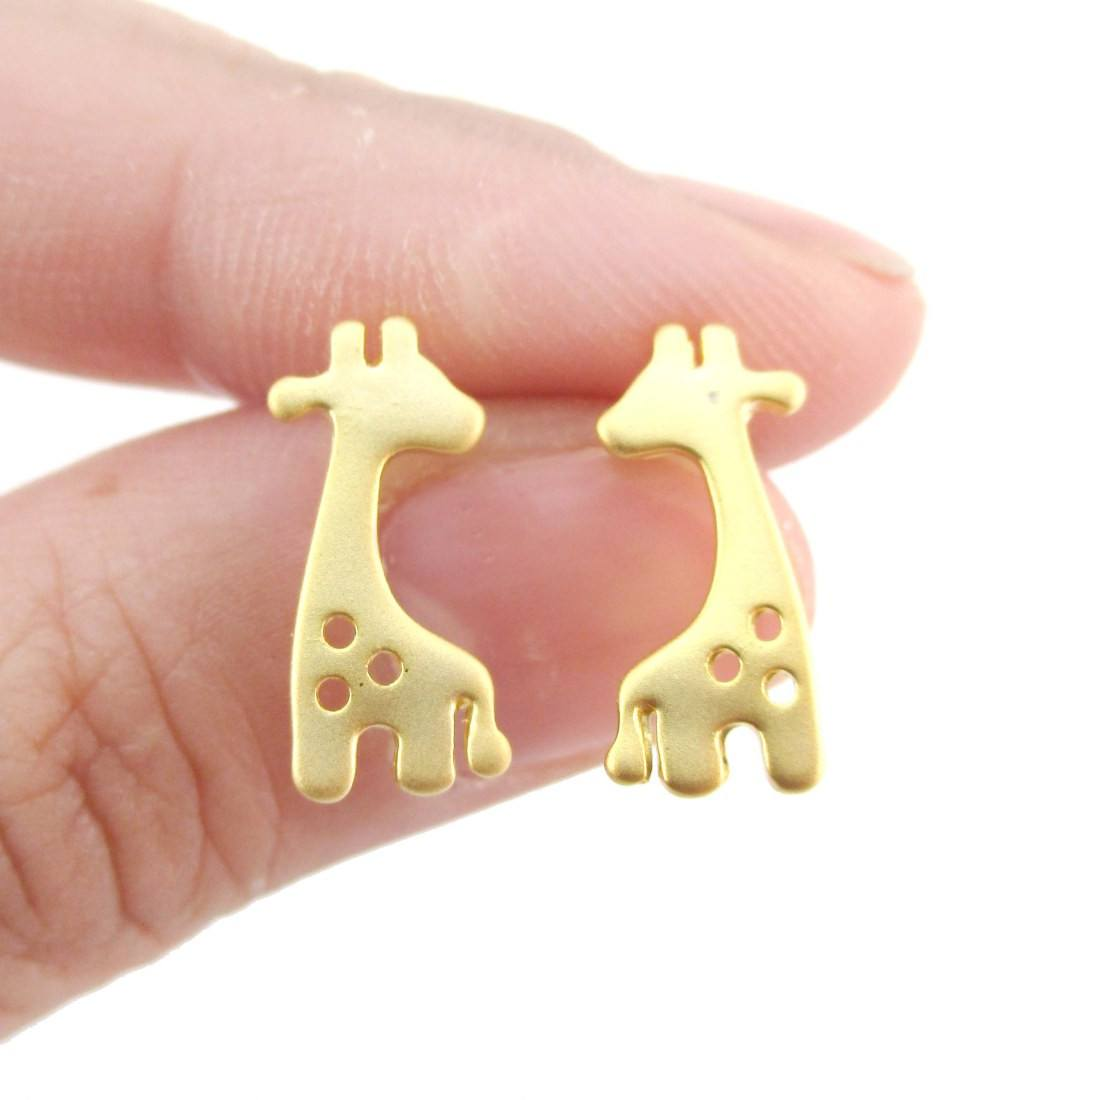 Spotted Giraffe Silhouette Shaped Stud Earrings in Gold